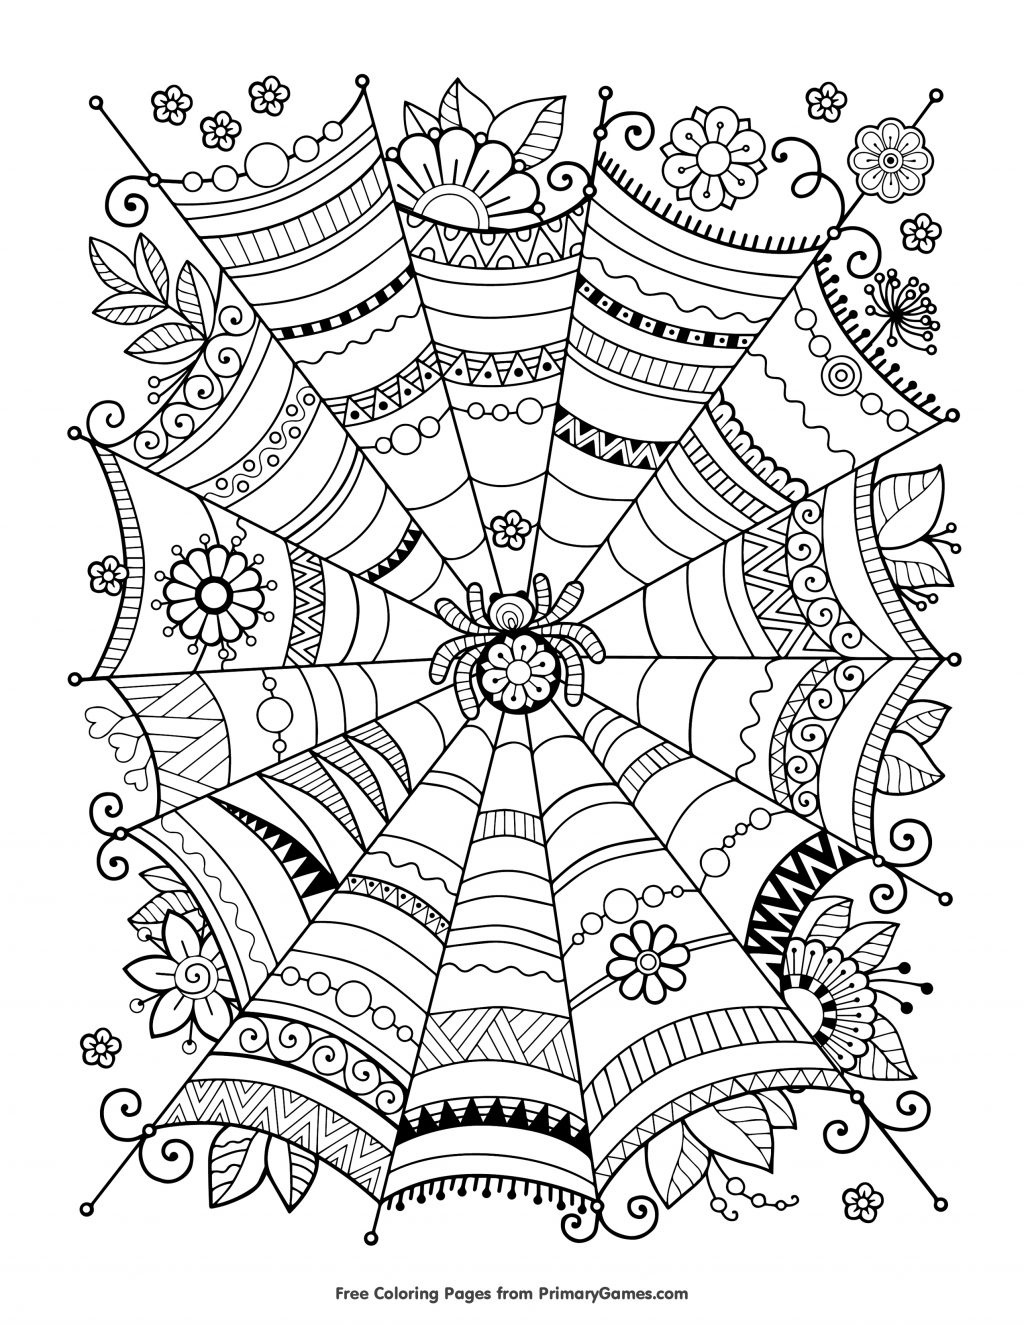 Coloring Page ~ Free Coloring Printables Page Halloween Pages For - Free Coloring Printables